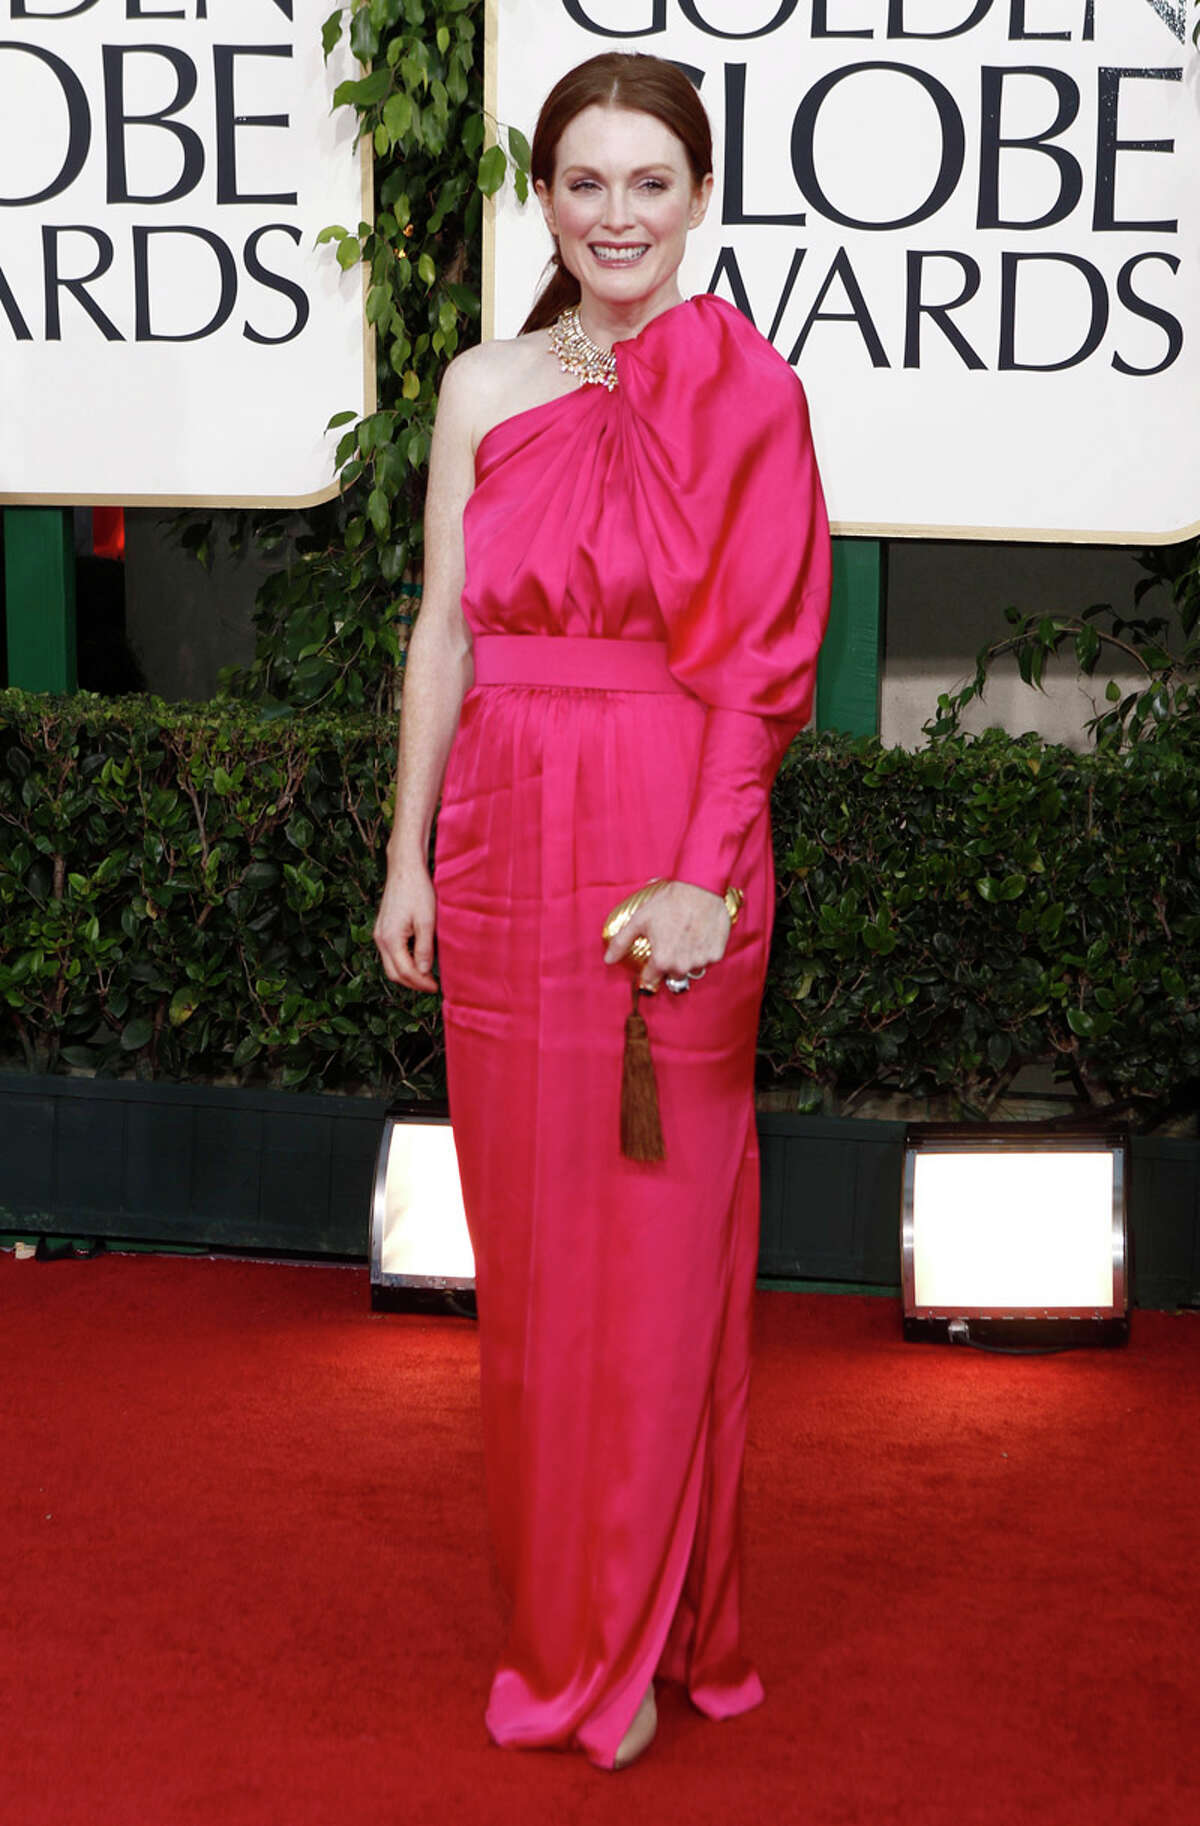 PINK STINK: Redhead Julianne Moore should have worn green (which she has) because she looks stunning in it - and it was a favorite hue at the Globes. Instead she opted for this single, poufy-sleeved disaster from Alber Elbaz at Lanvin. - Michael Quintanilla PHOTO BY MATT SAYLES / ASSOCIATED PRESS